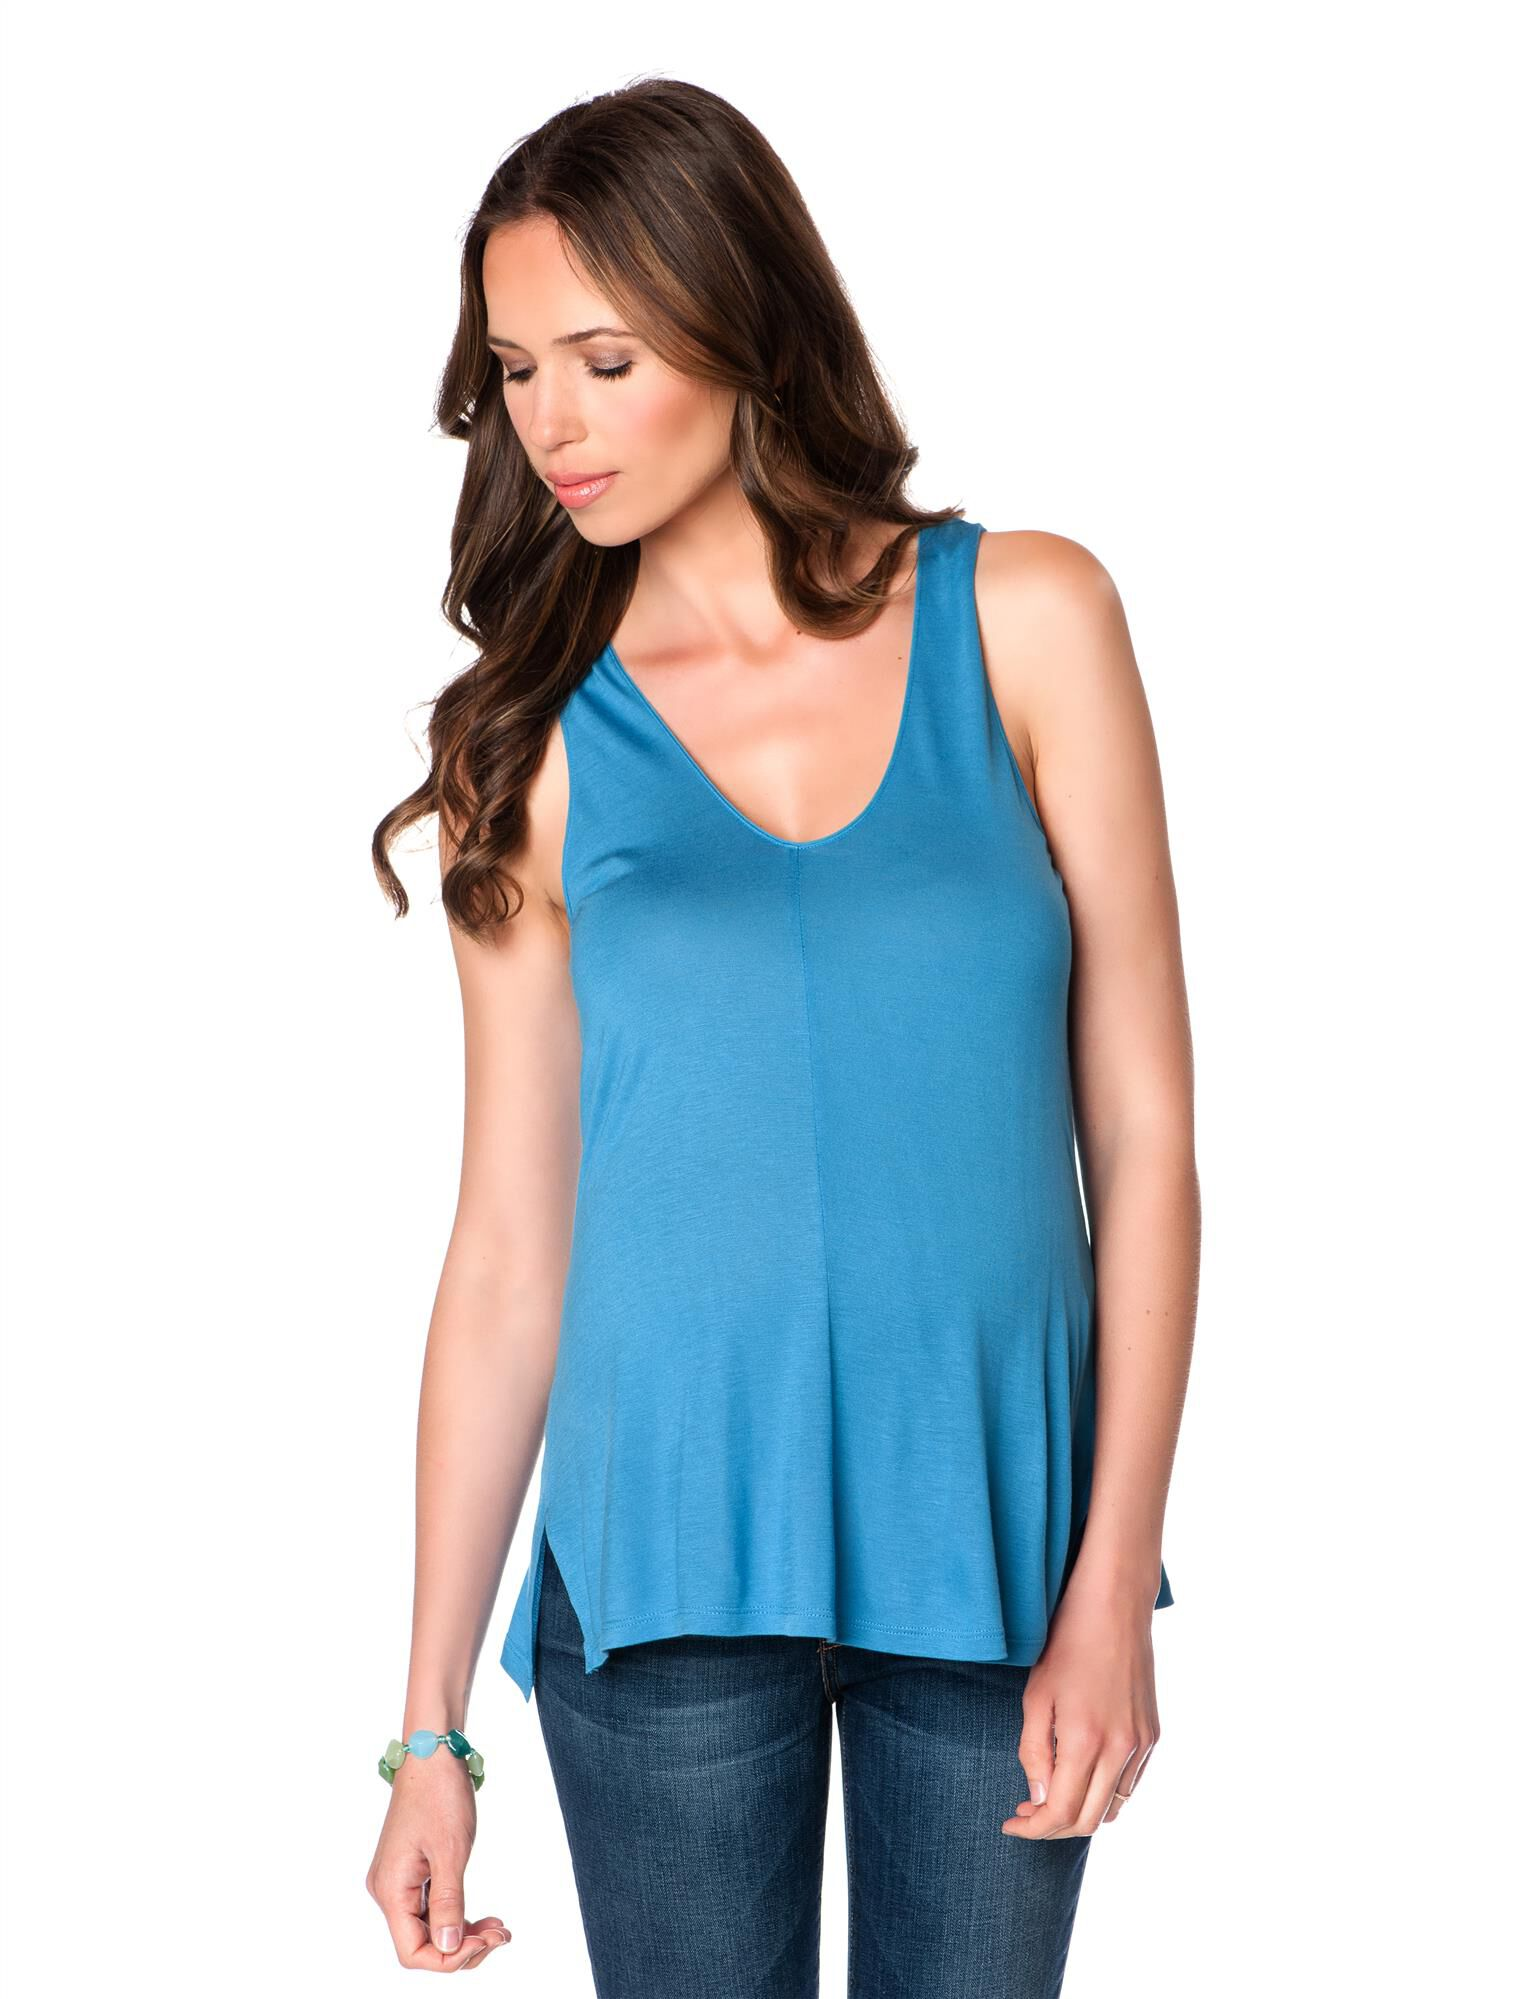 Relaxed Fit Maternity Tank Top